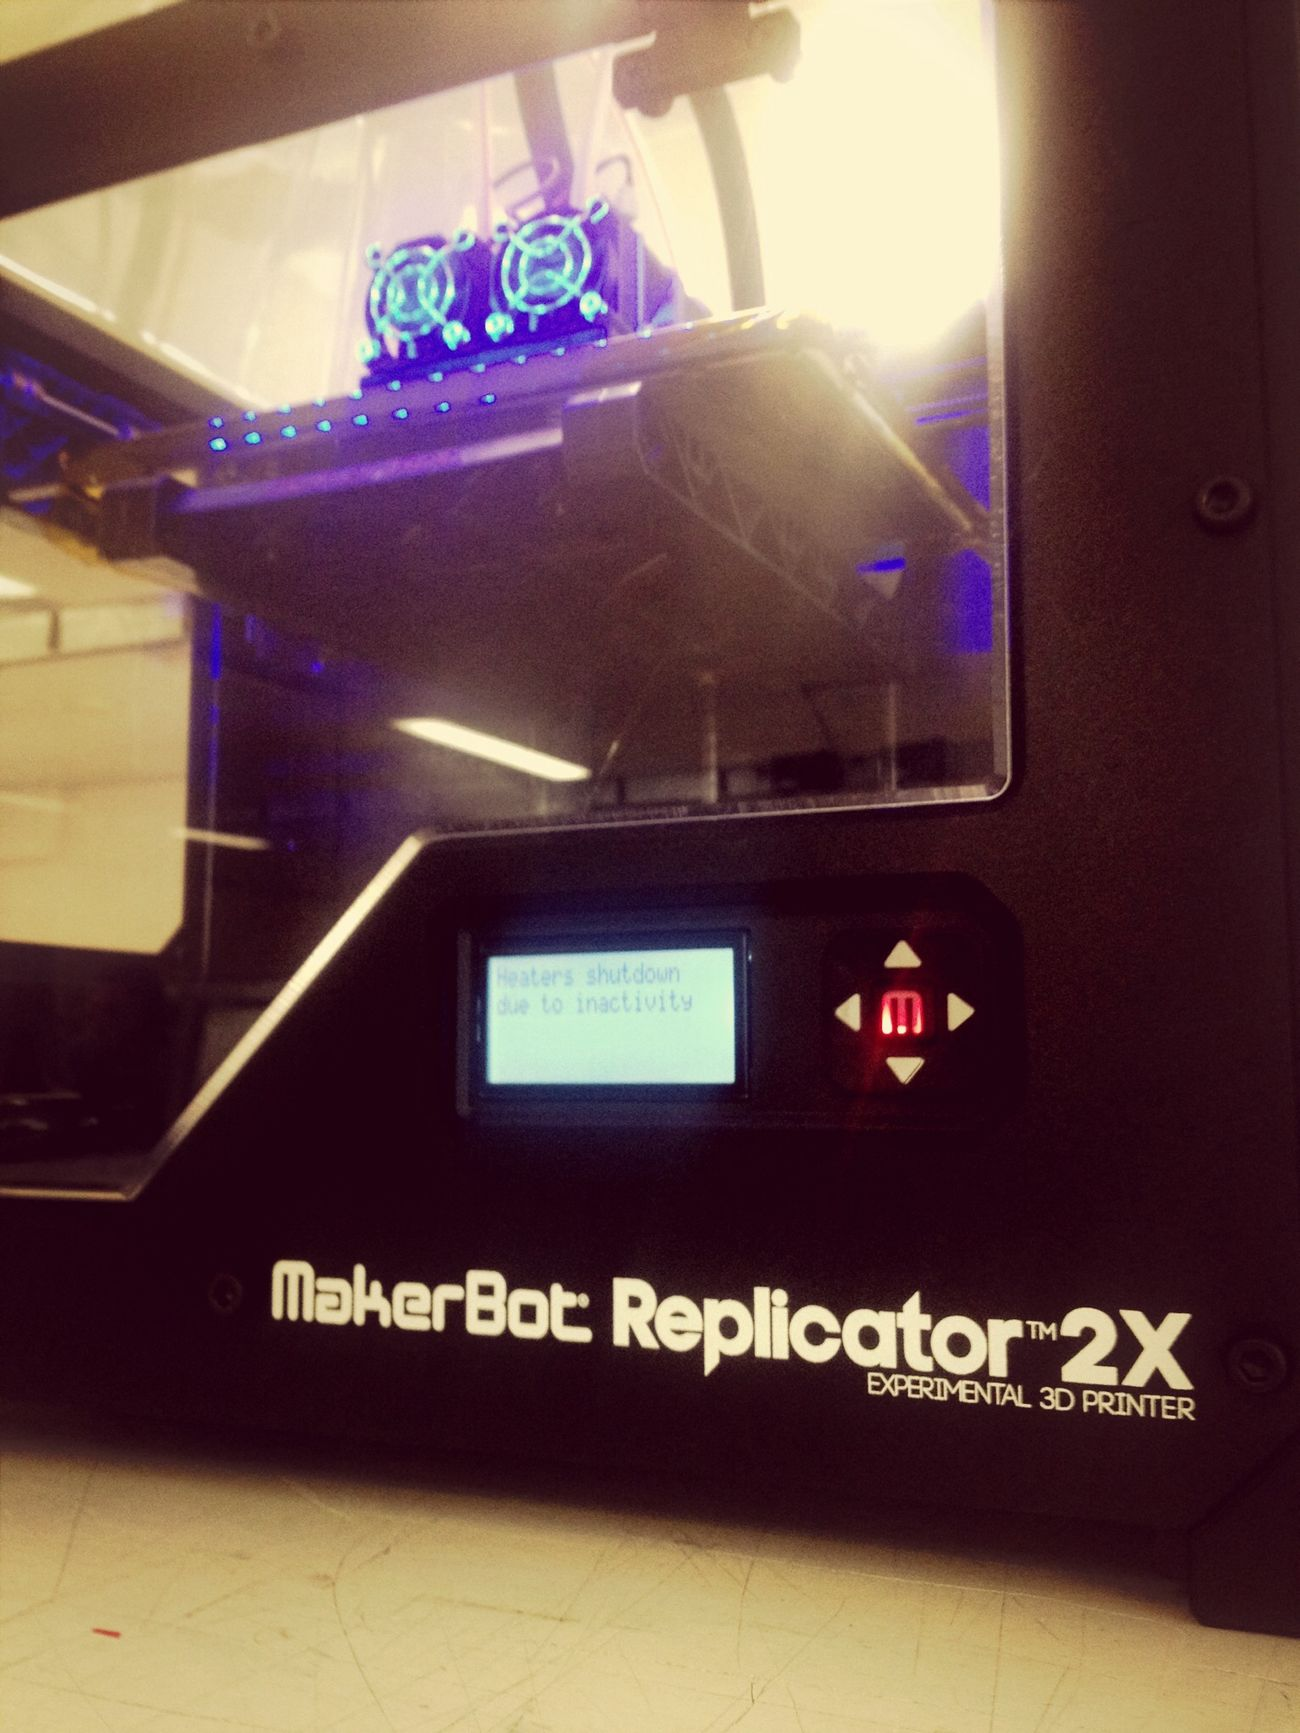 Boys And There Toys getting started with the Makerbot 2X Working i can't wait 2 play around with it @makerbot